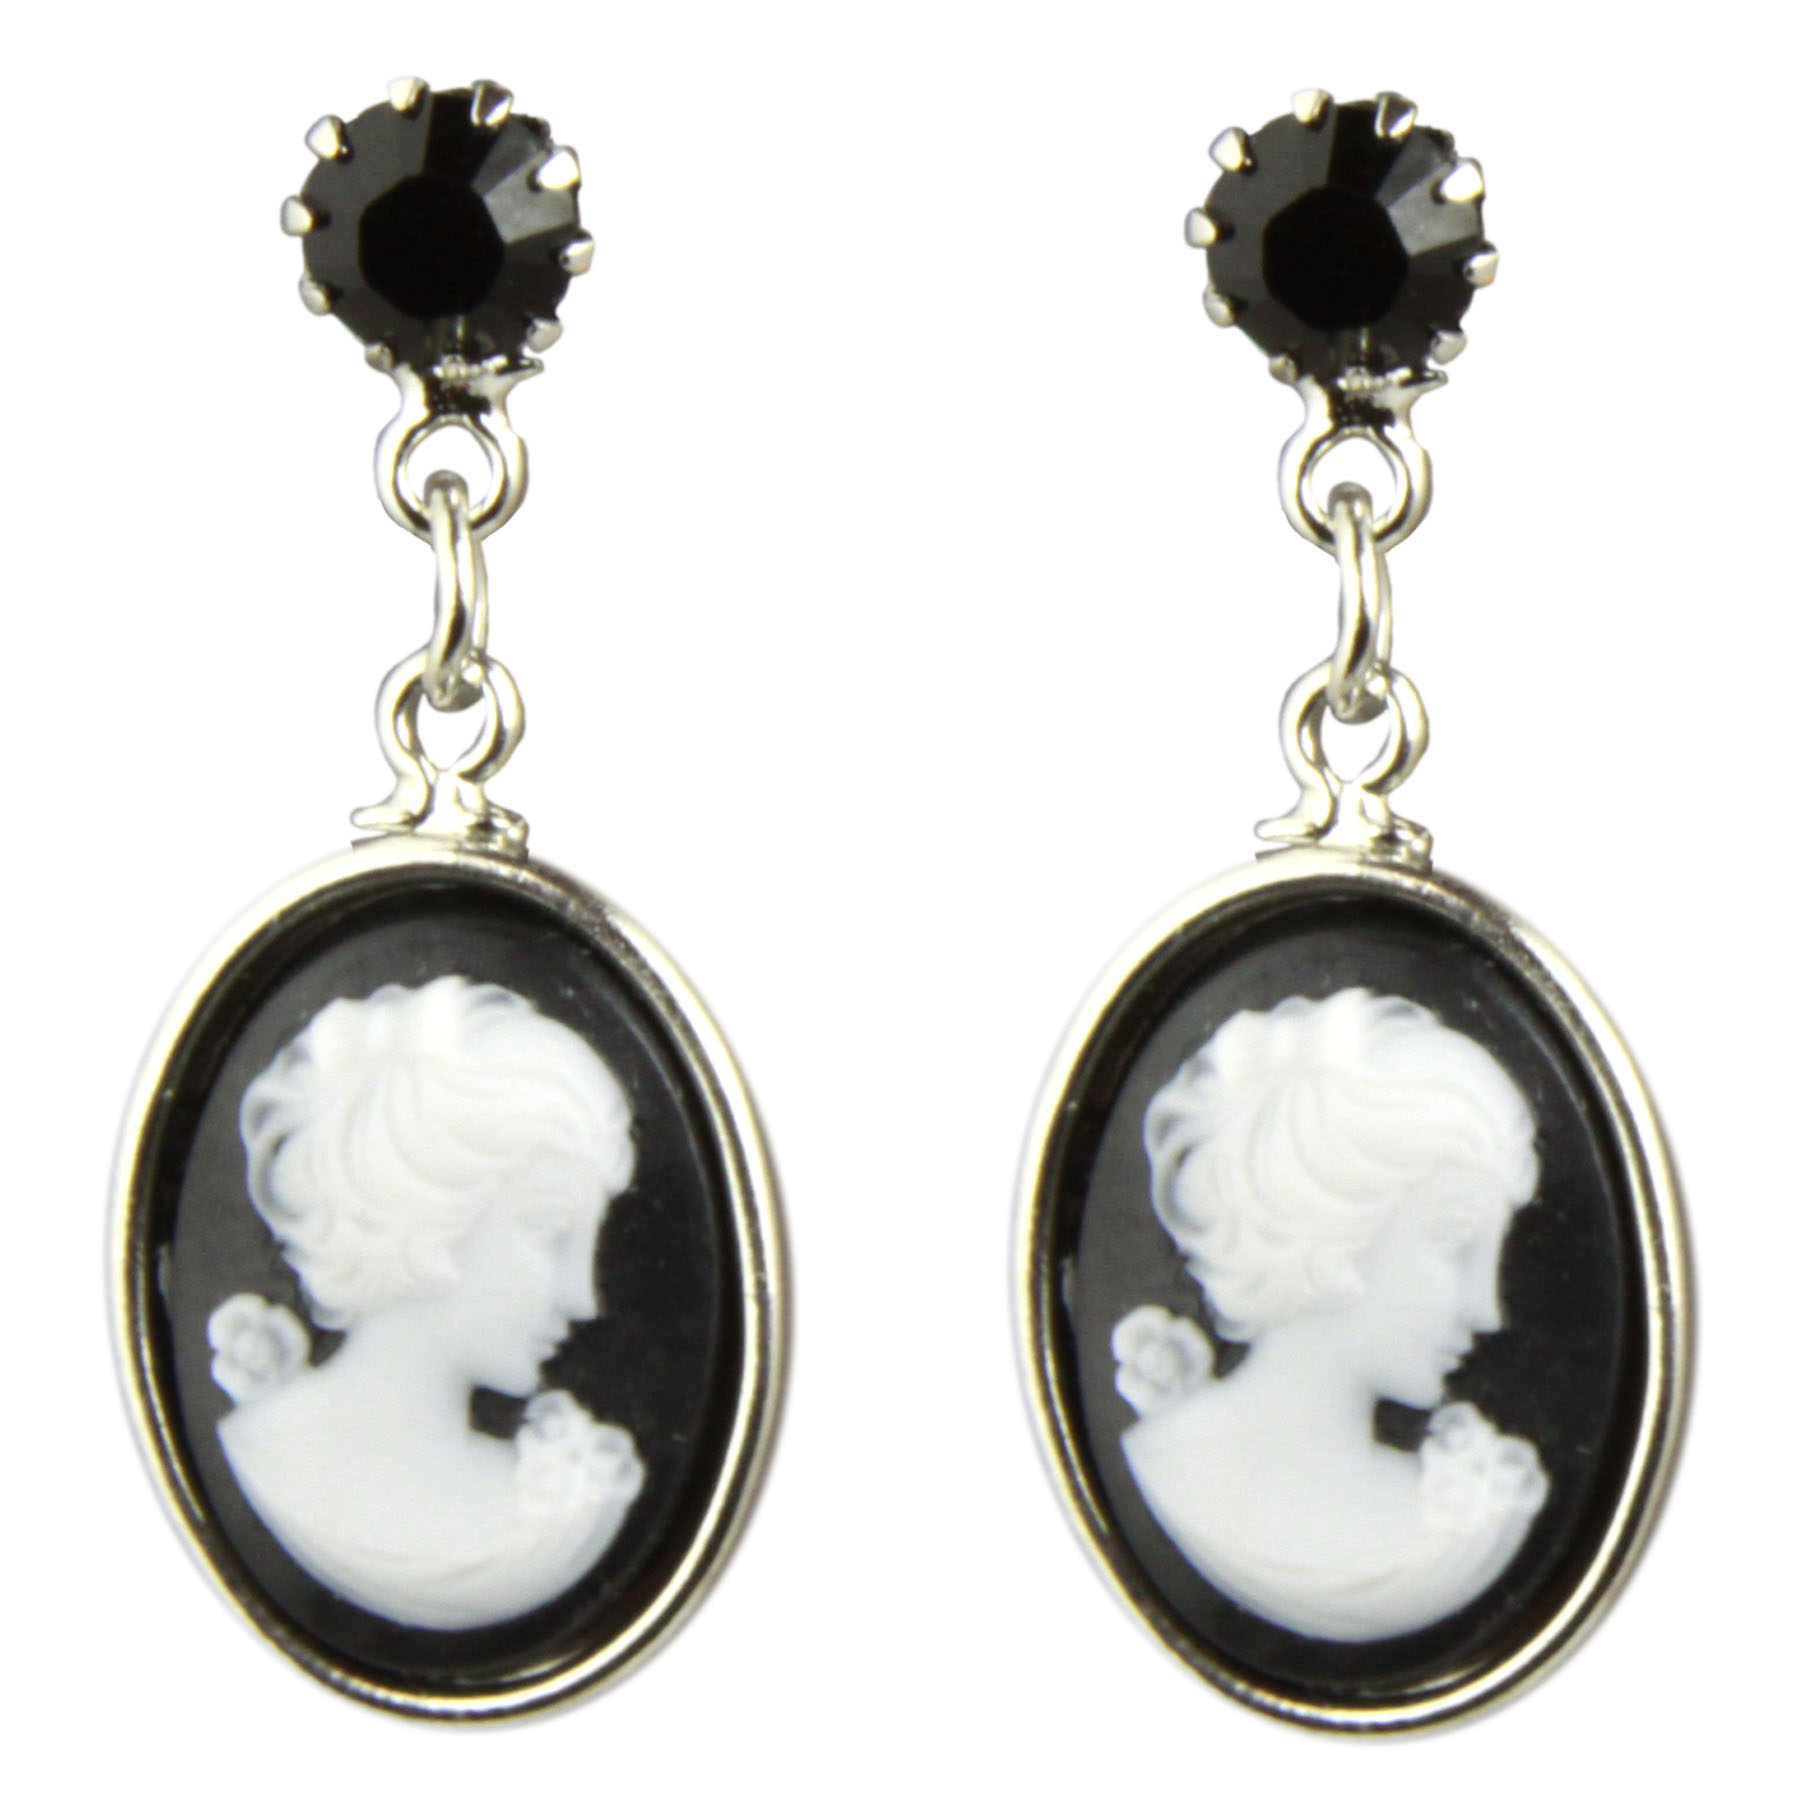 Tarina Tarantino Jewelry Iconic Black Small Cameo Drop Earrings